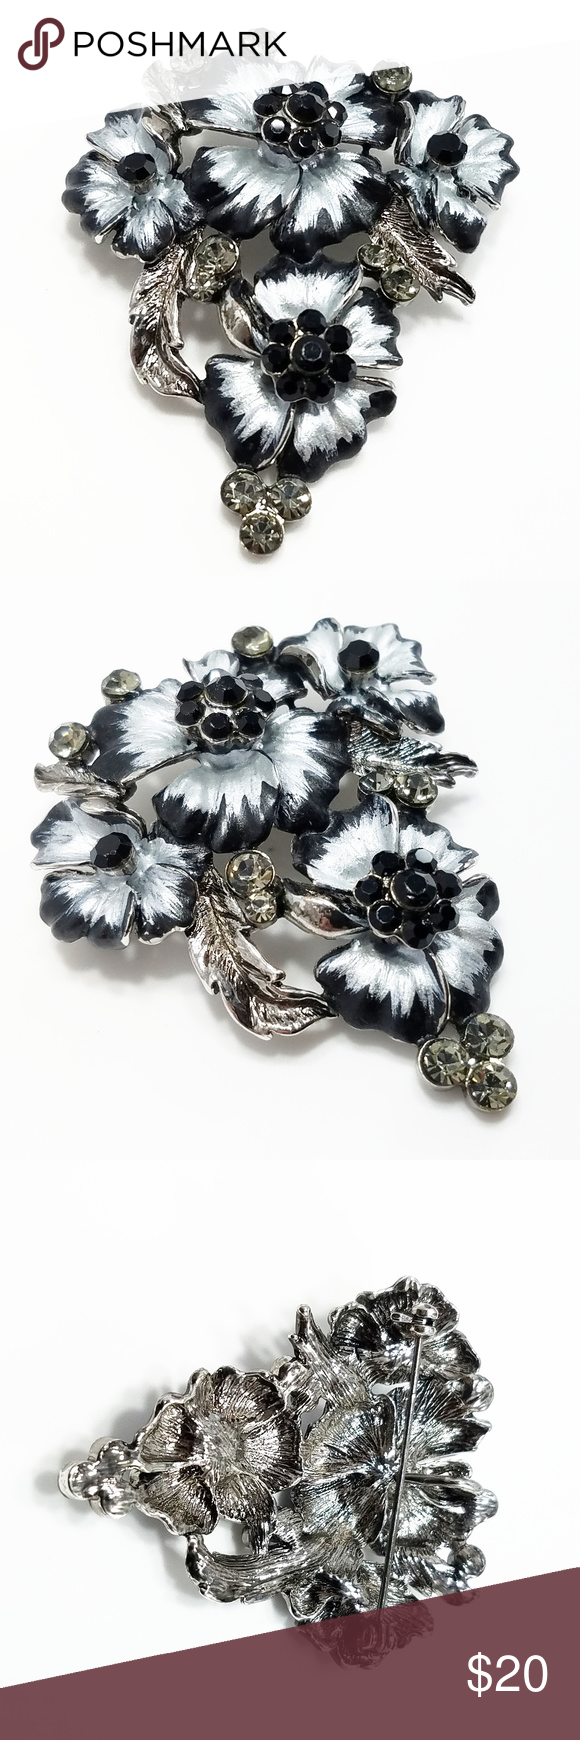 Floral broochpendant  of rhinestone and silver